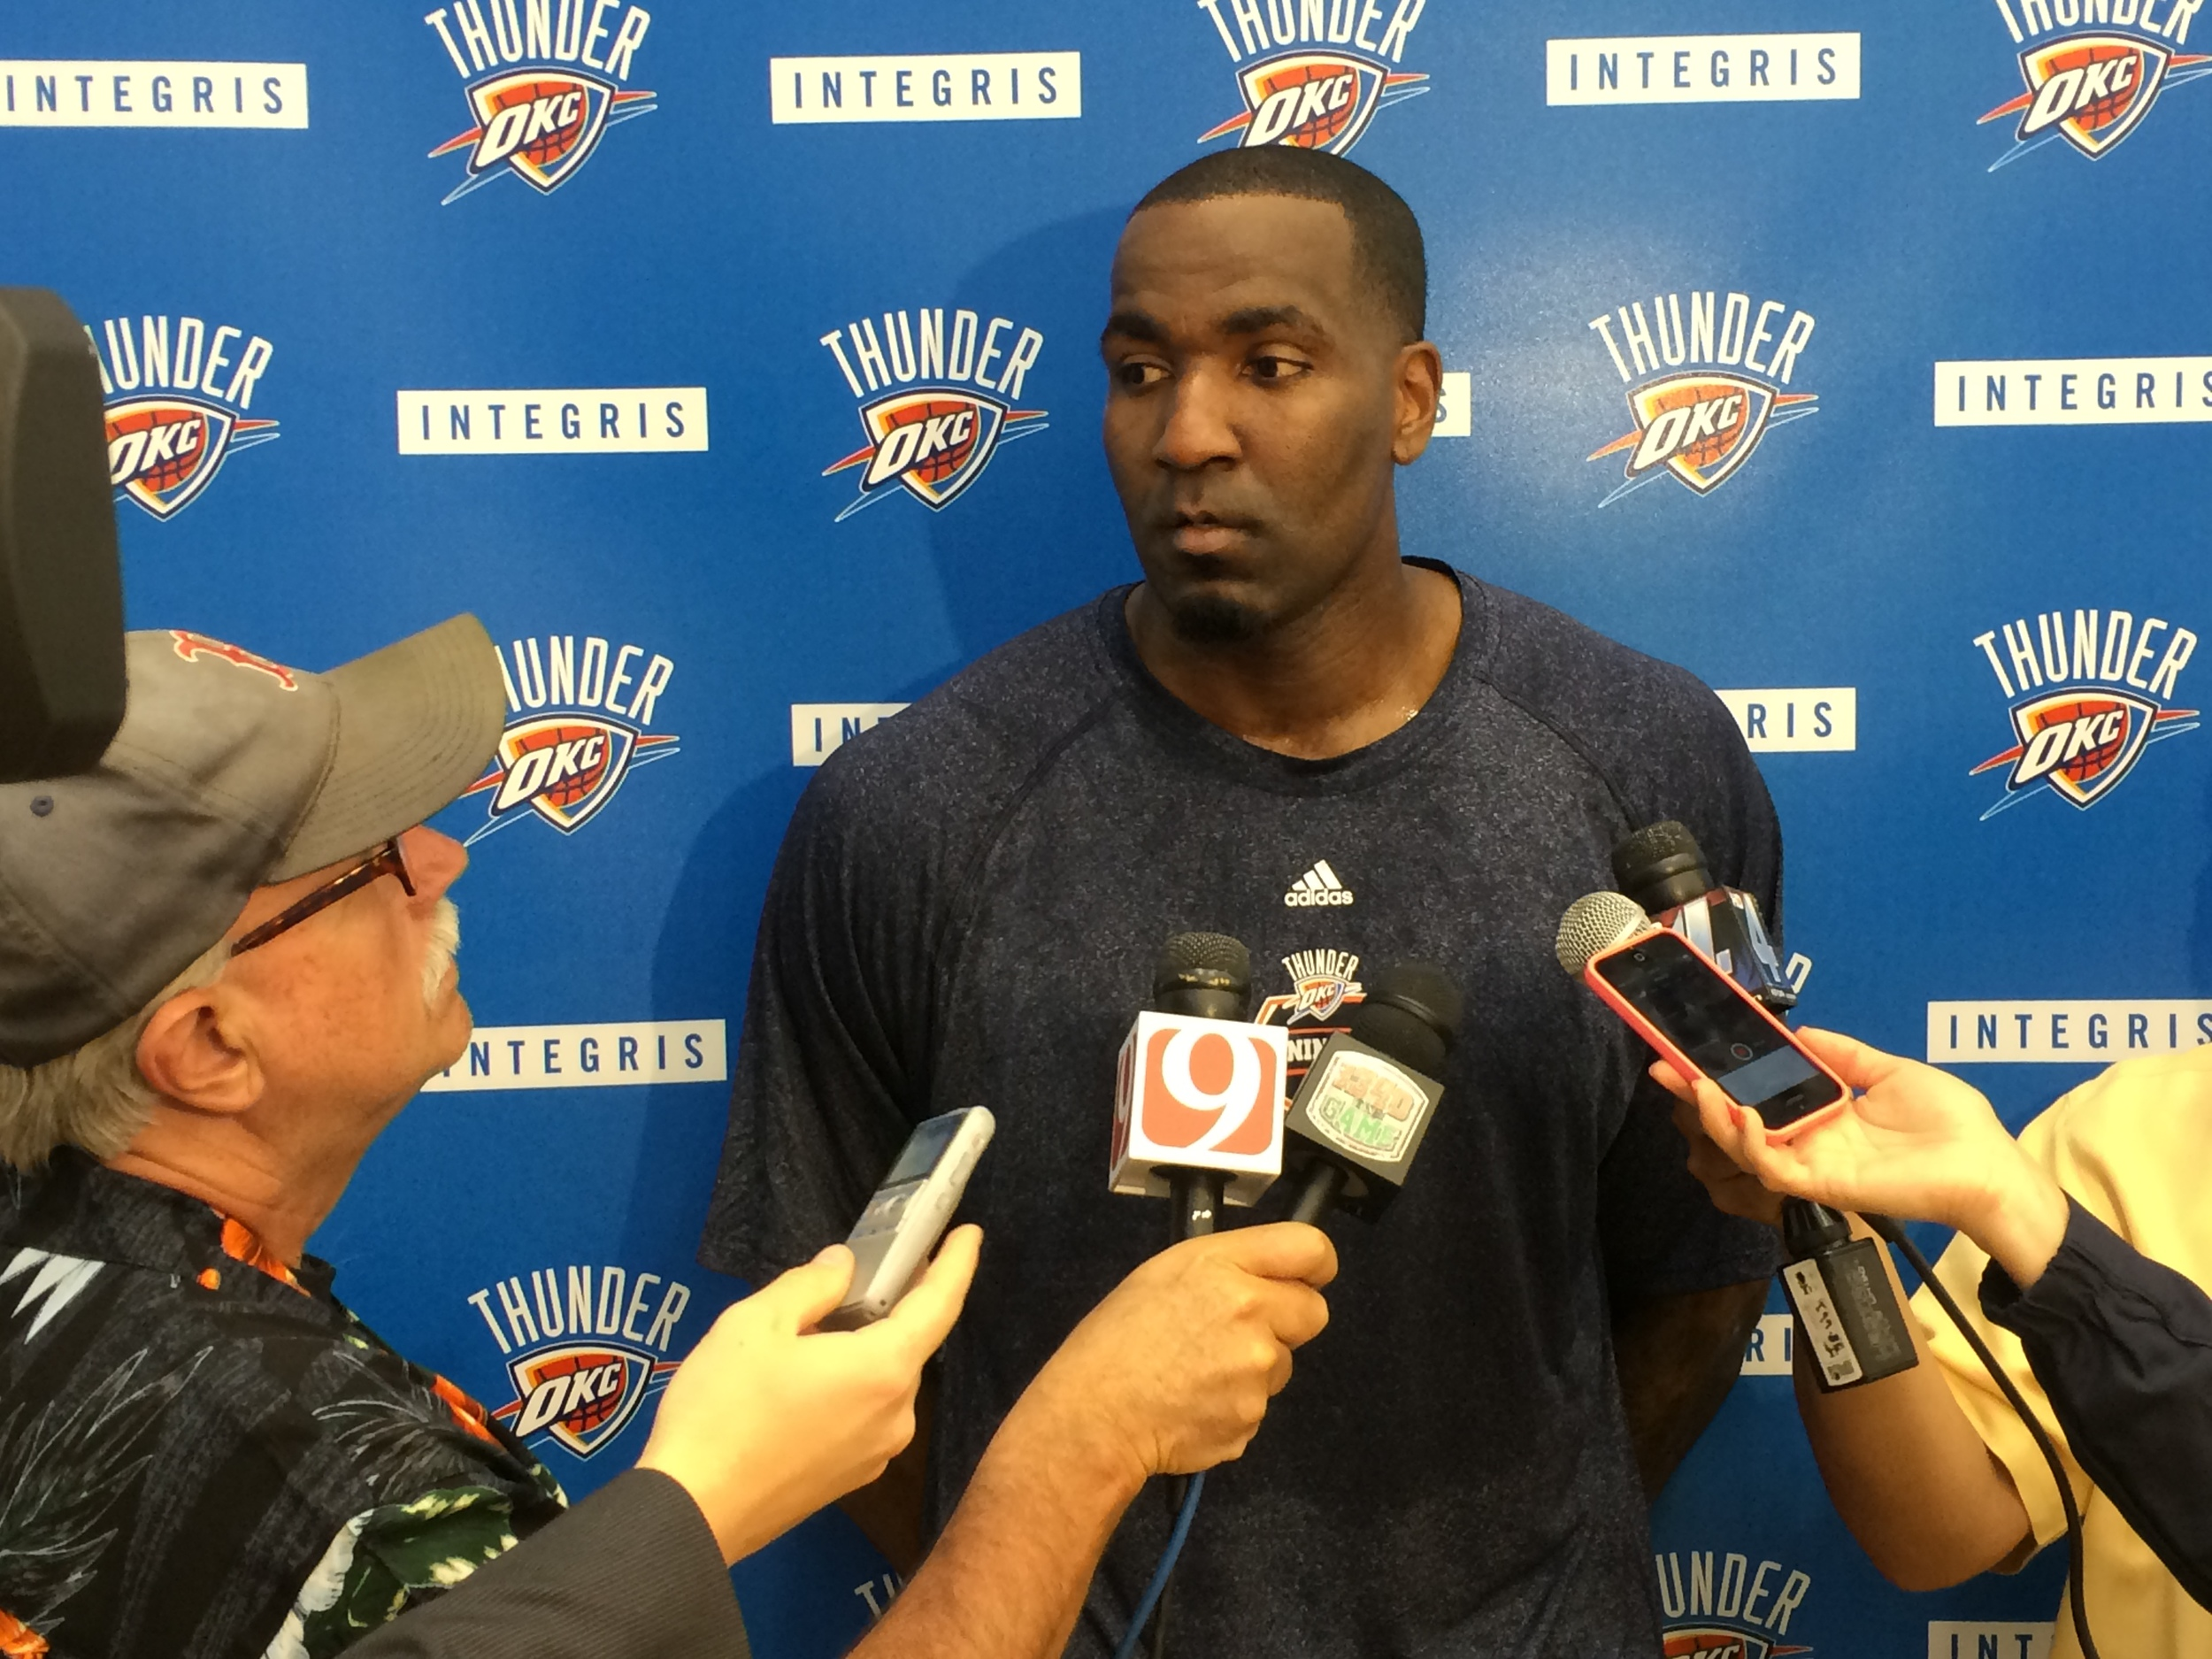 Thunder center Kendrick Perkins speaks to reporters after a recent practice. Photo by Jeremy Griffin for InsideThunder.com